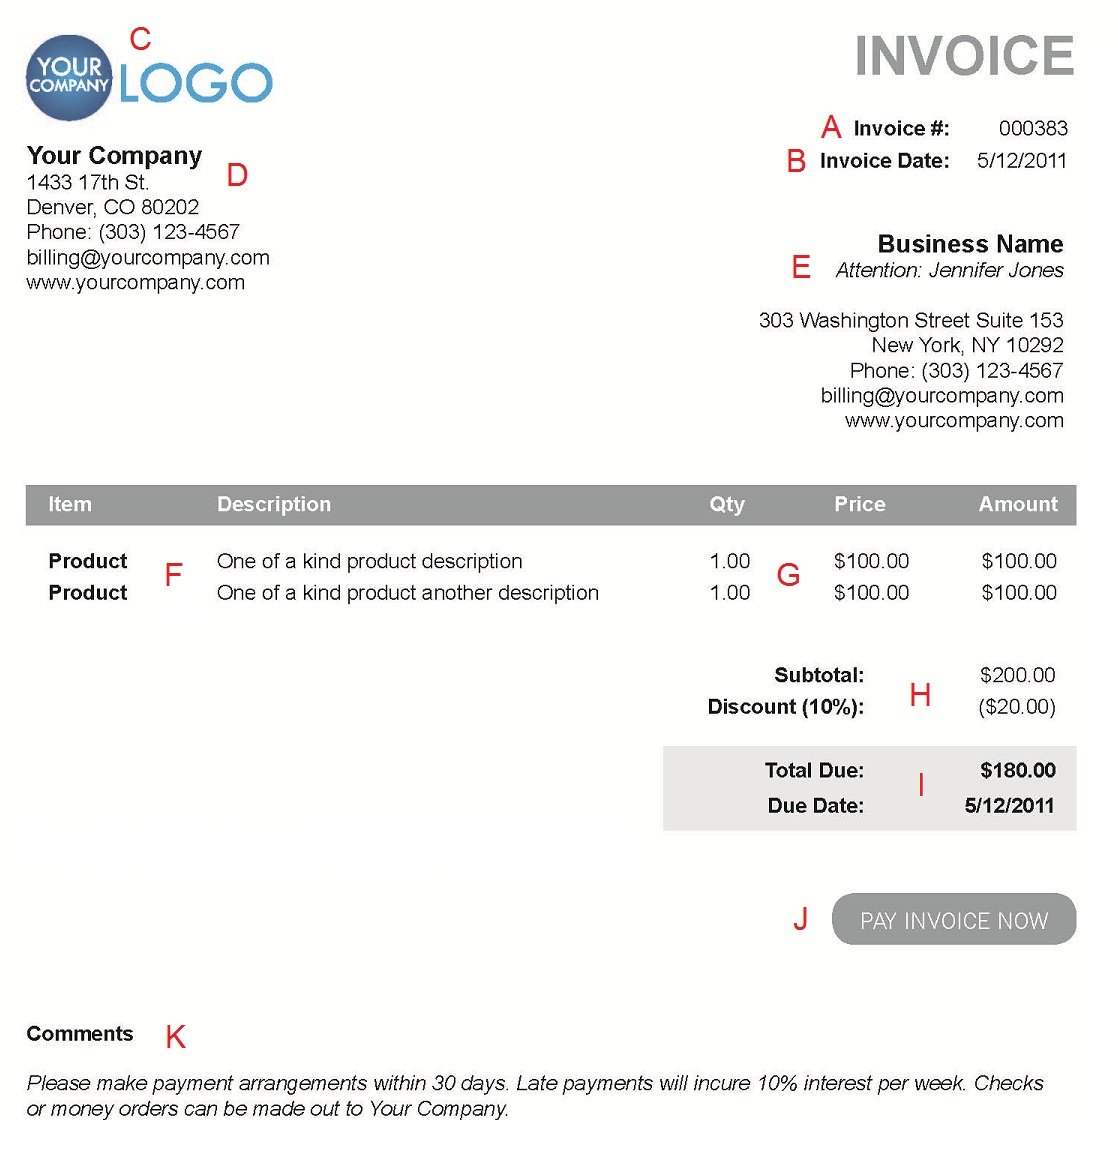 Poorboyzjeepclubus  Prepossessing The  Different Sections Of An Electronic Payment Invoice With Entrancing A  With Archaic Work Invoice Template Also Free Invoices Template In Addition Invoice By Wave And Invoice Templates Free As Well As Invoice And Estimate Additionally Paypal Create Invoice From Paysimplecom With Poorboyzjeepclubus  Entrancing The  Different Sections Of An Electronic Payment Invoice With Archaic A  And Prepossessing Work Invoice Template Also Free Invoices Template In Addition Invoice By Wave From Paysimplecom